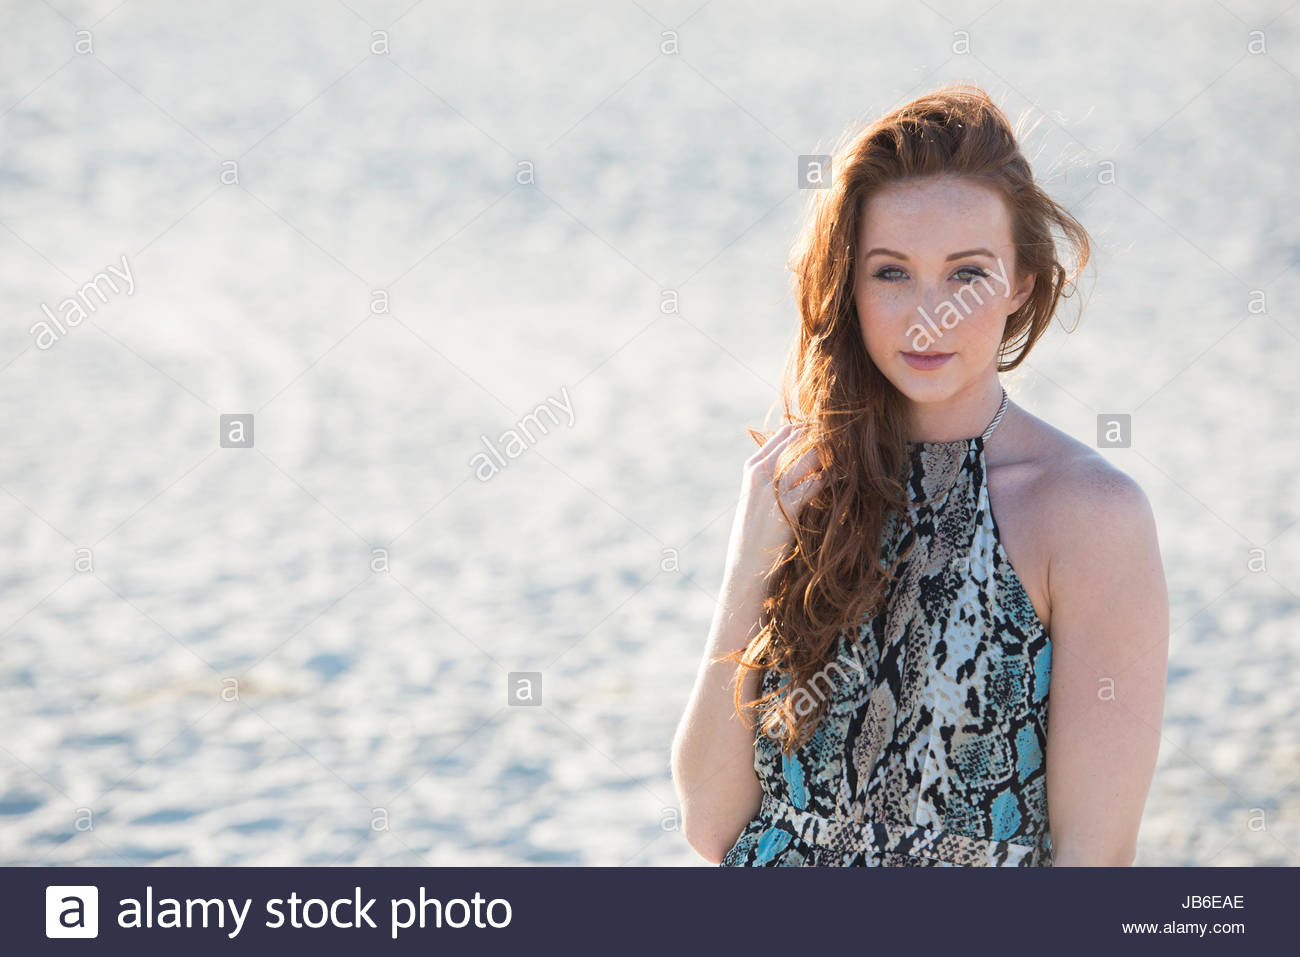 Beautiful young red-haired woman wearing turquoise and beige sundress poses on beach with sand and setting sun behind - Stock Image